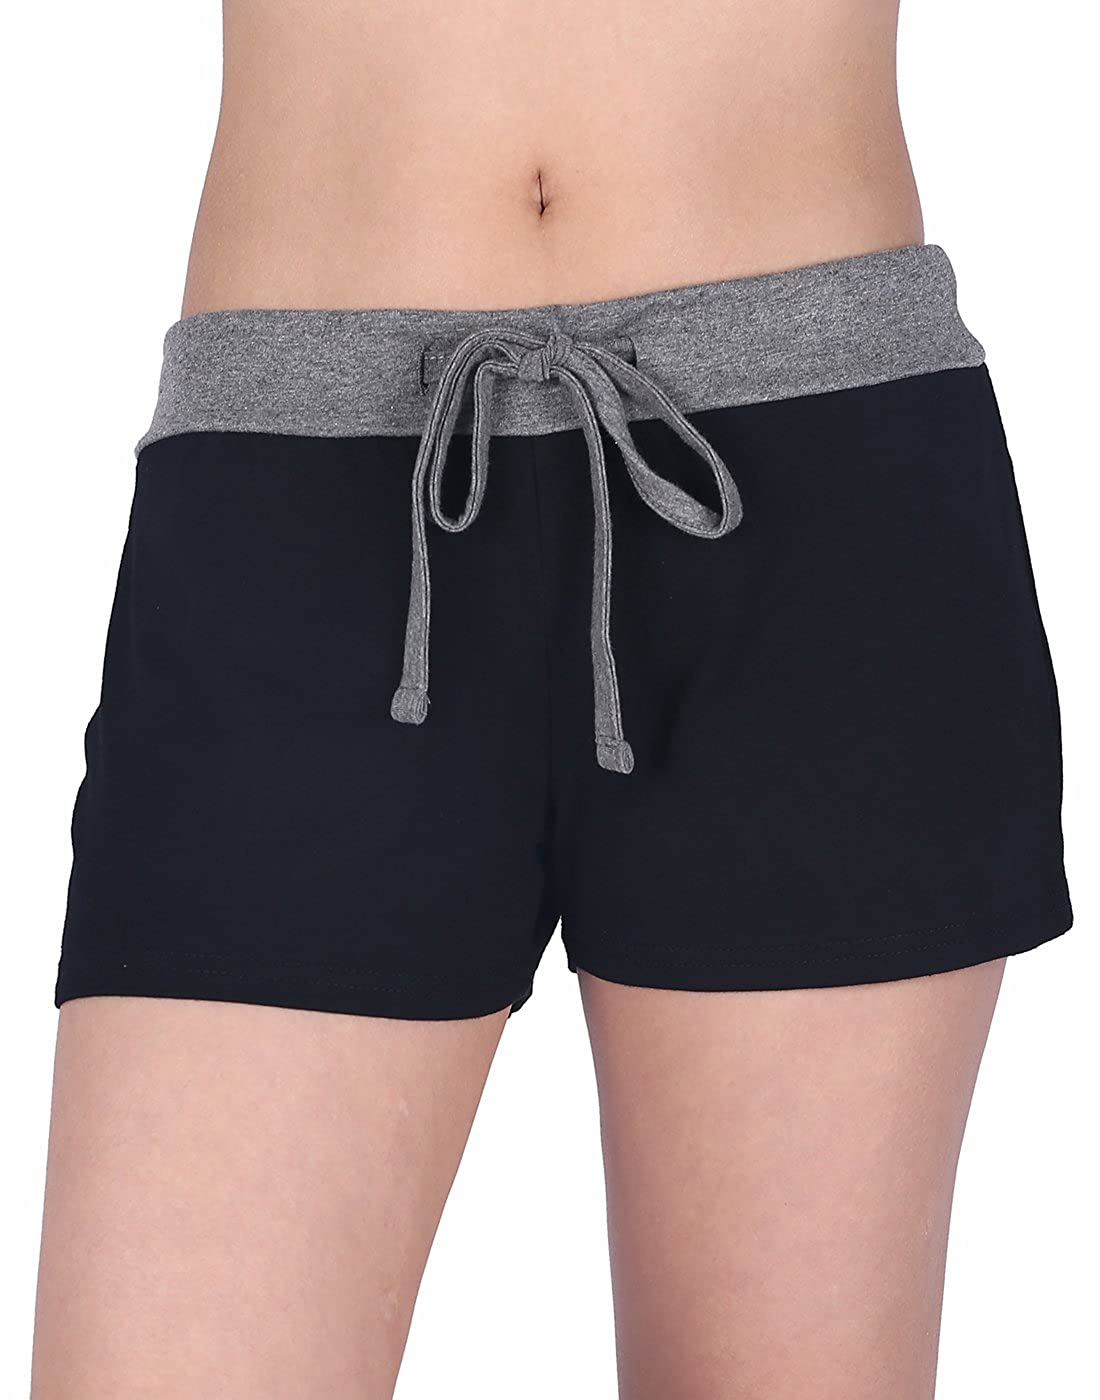 f93eb4c82a Perfect lounge shorts for relaxing, sleeping, yoga, traveling and light  workouts | Drawstring waistband ensures comfortable fit